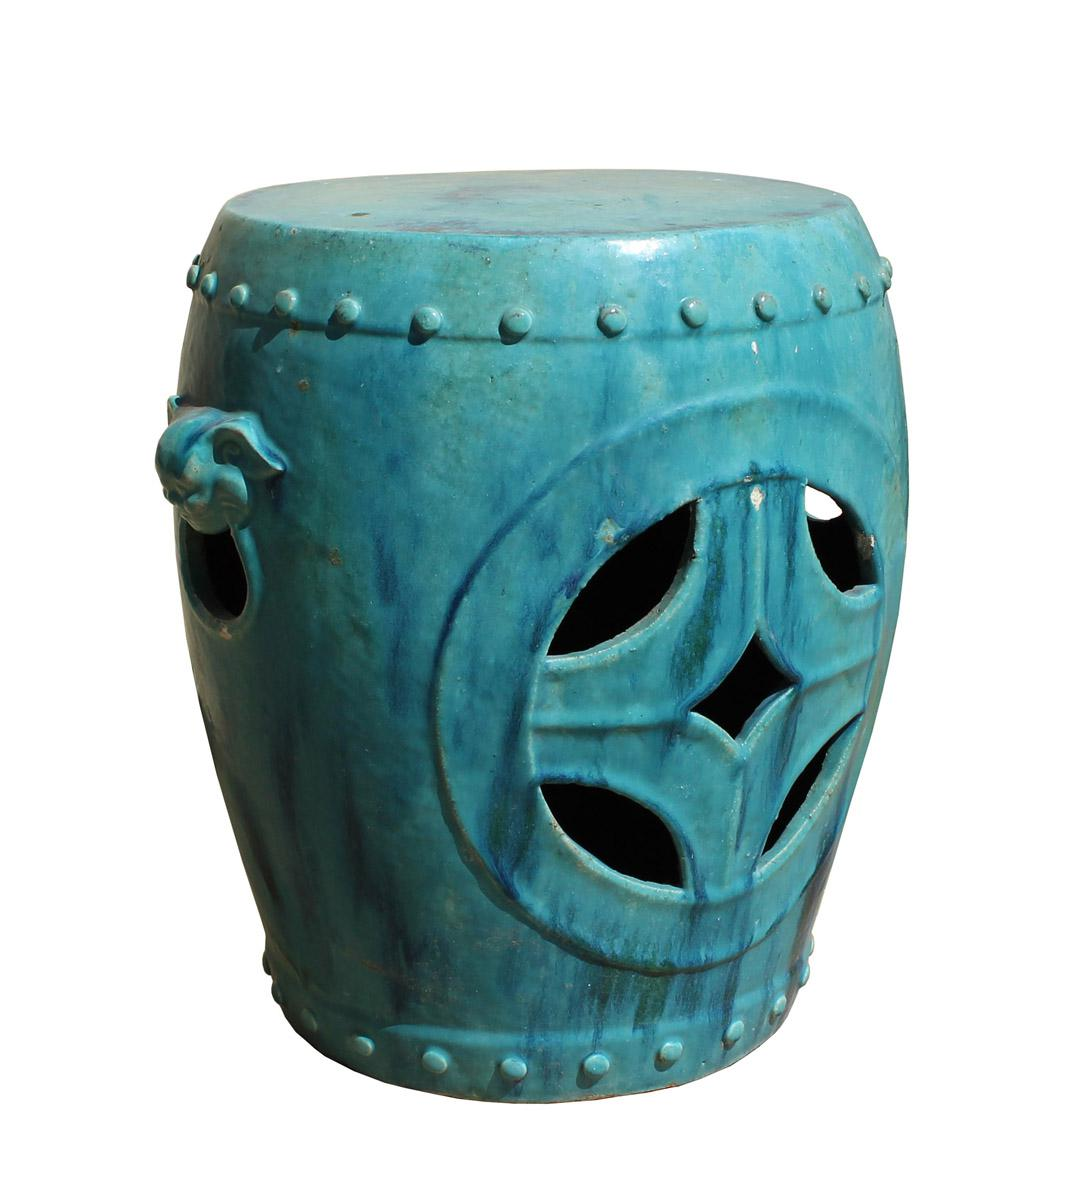 Merveilleux Chinese Distressed Turquoise Green Round Clay Ceramic Garden Stool Cs2842  For Sale   Image 5 Of